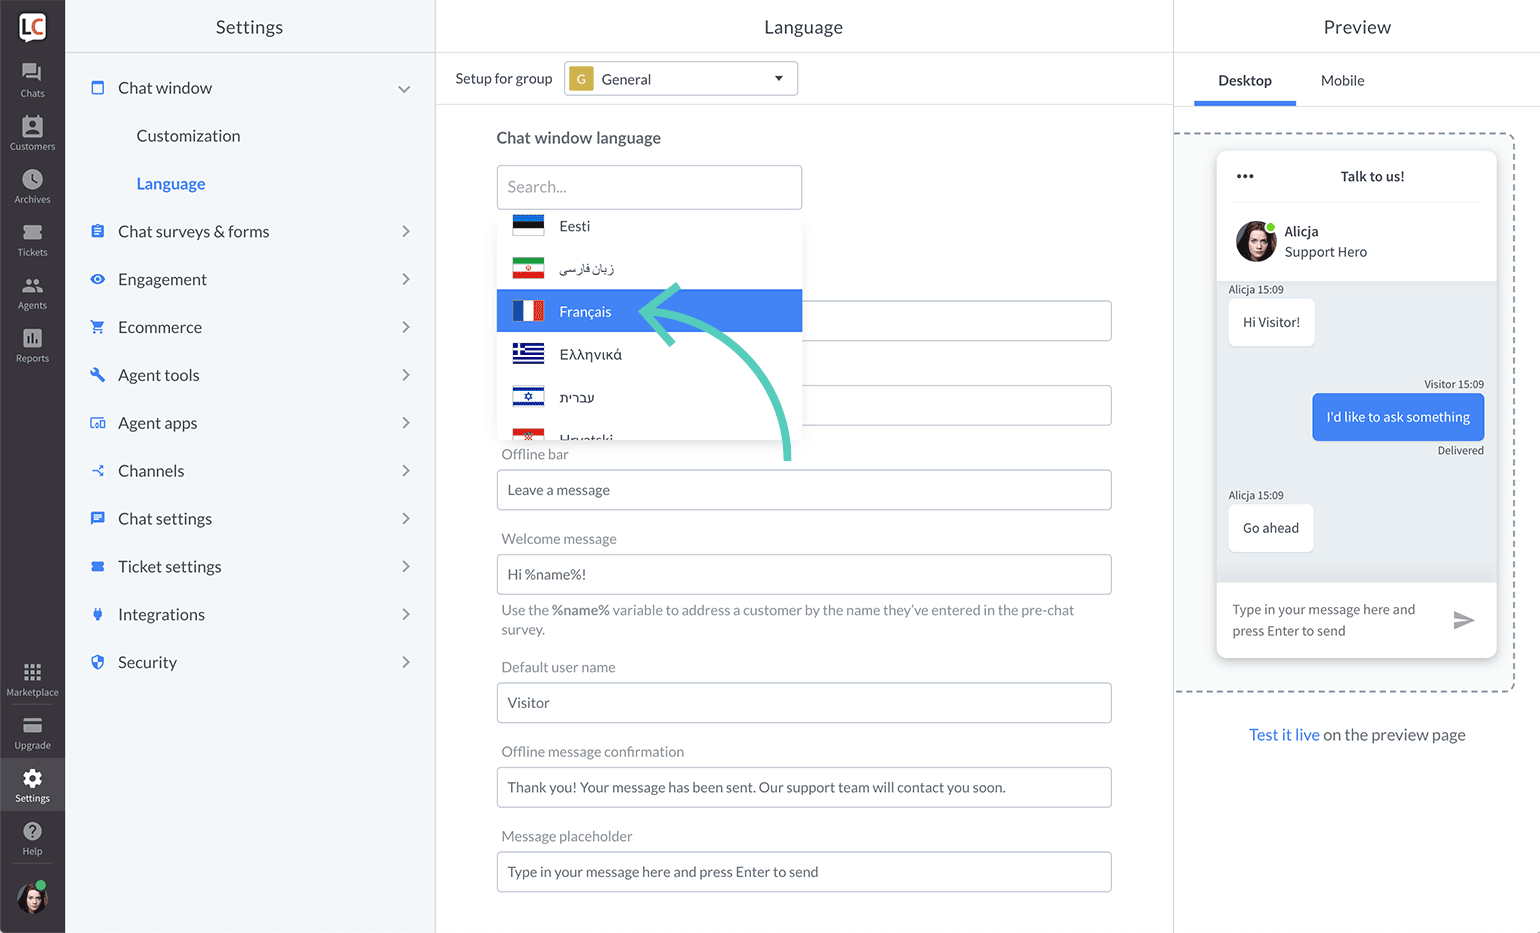 Choose a language from the list